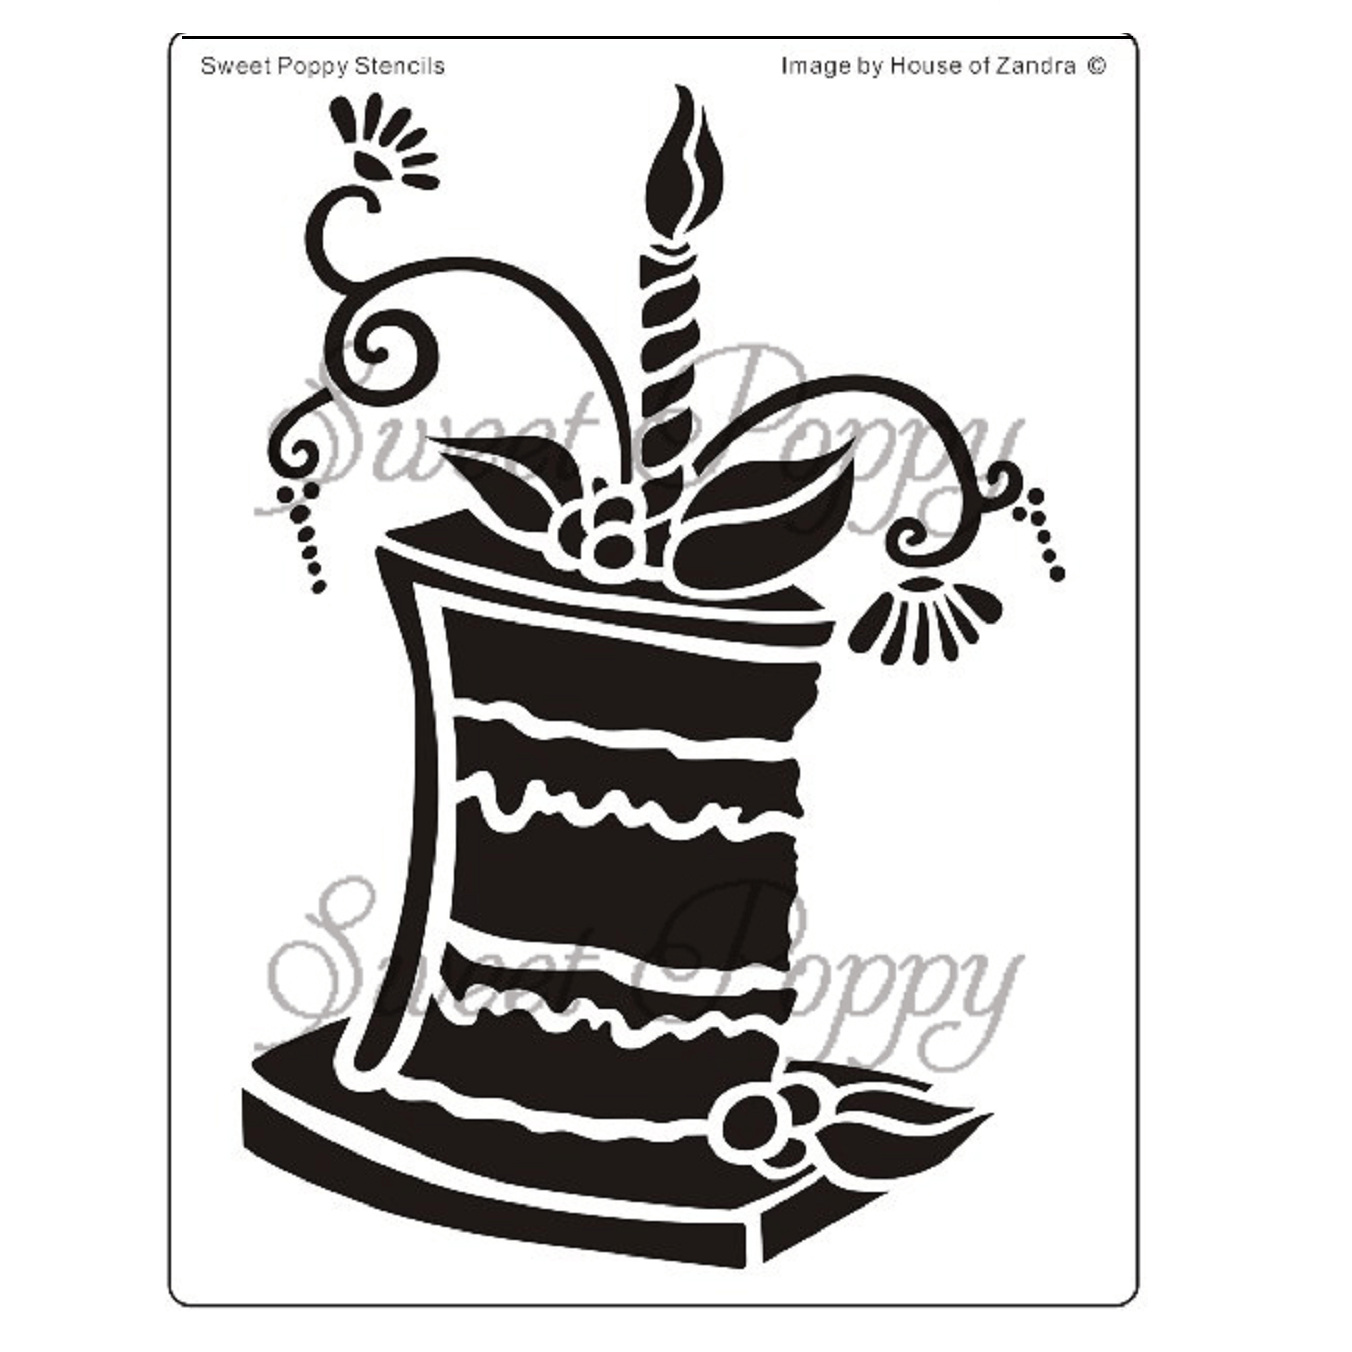 Sweet Poppy Stencil: Cake 2 – Slice